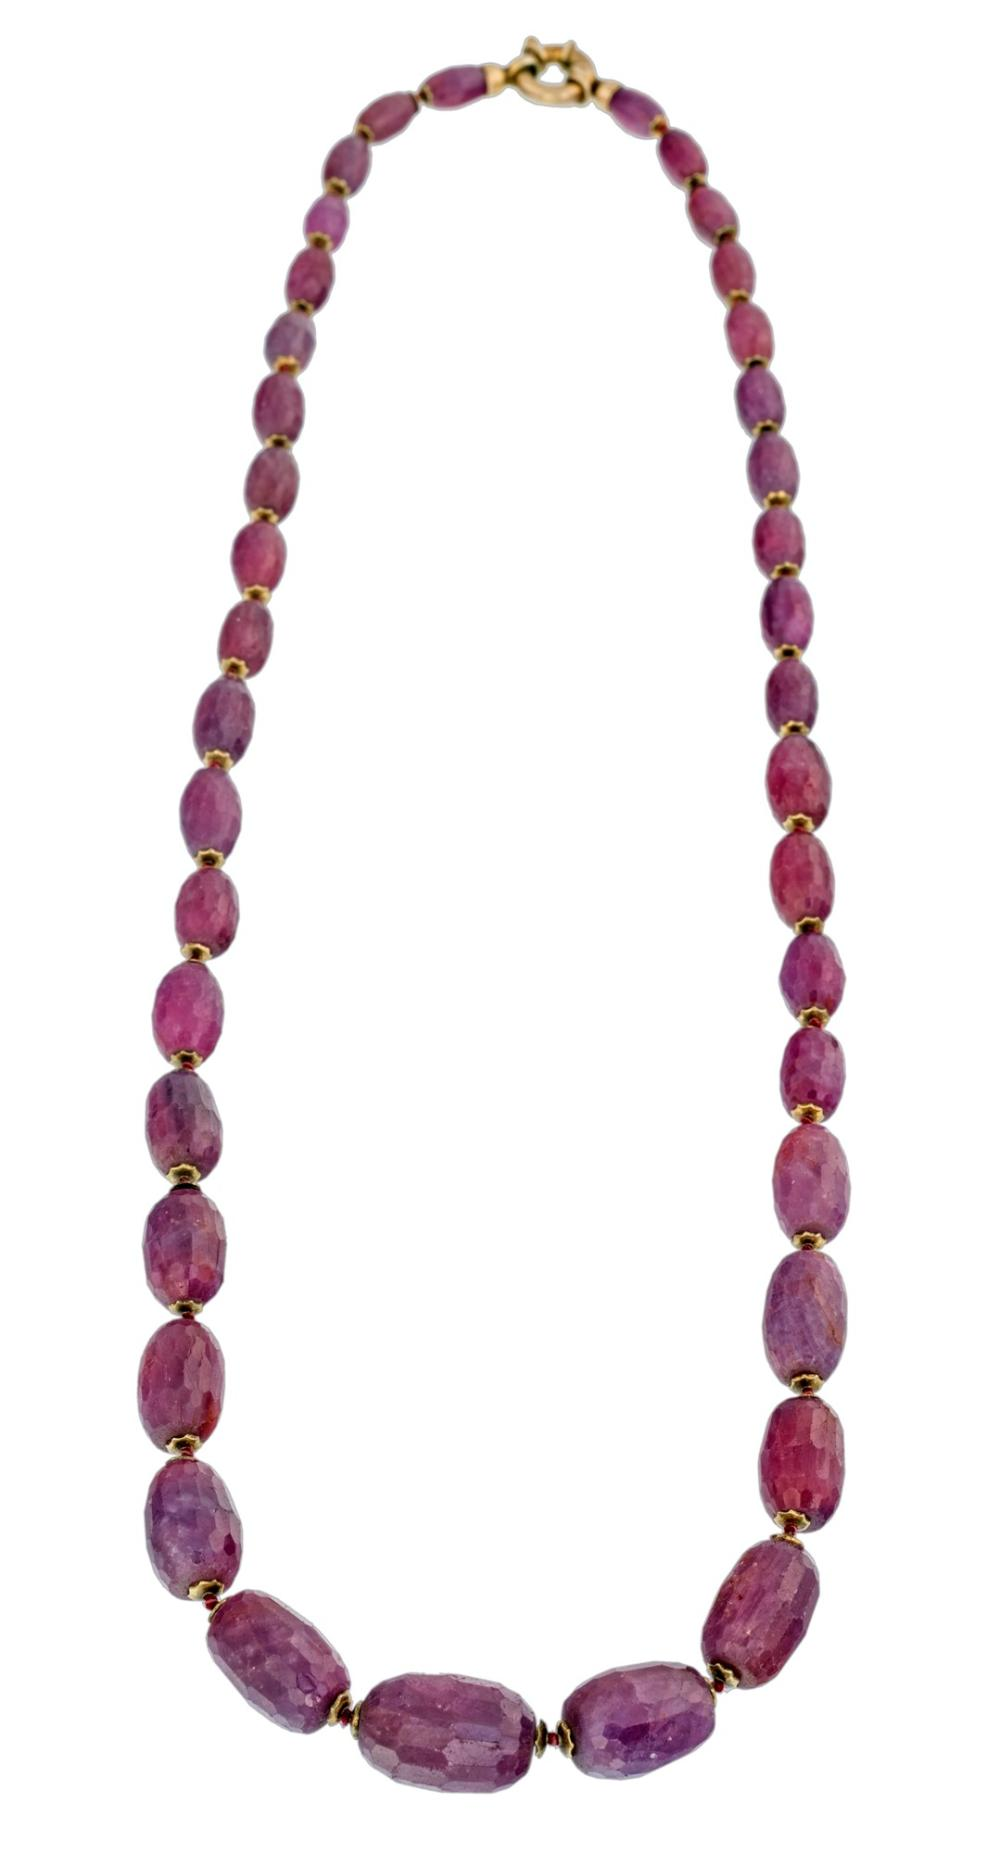 RED CORINDUM NECKLACE